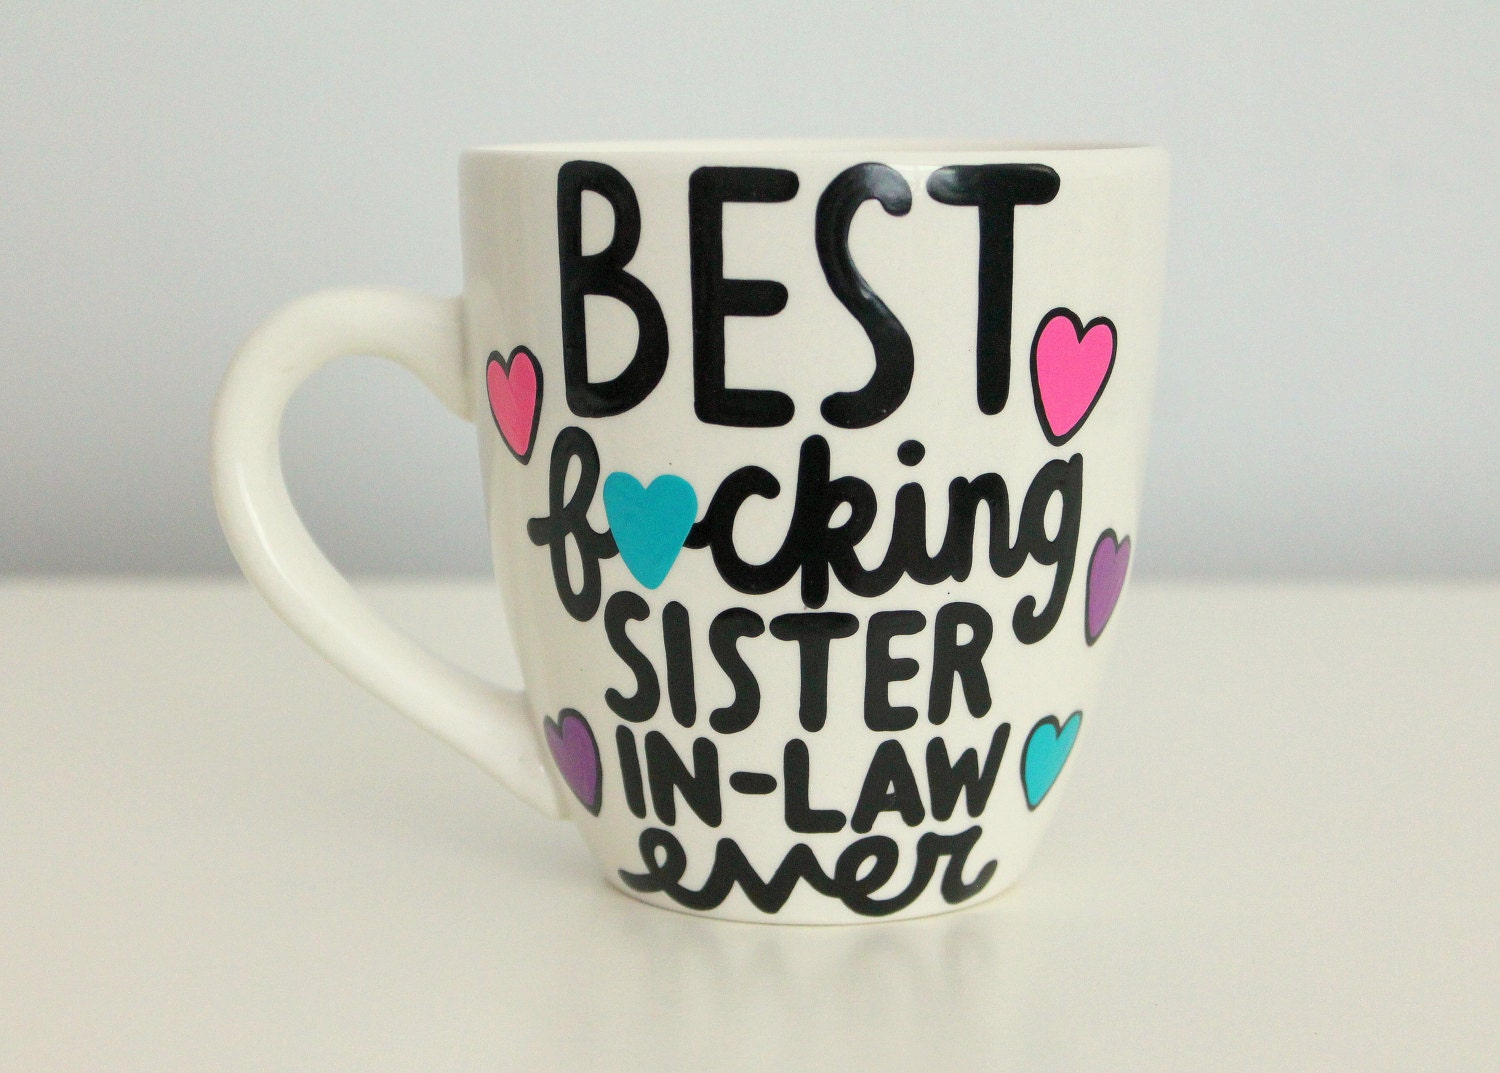 Great gifts for your sister in law